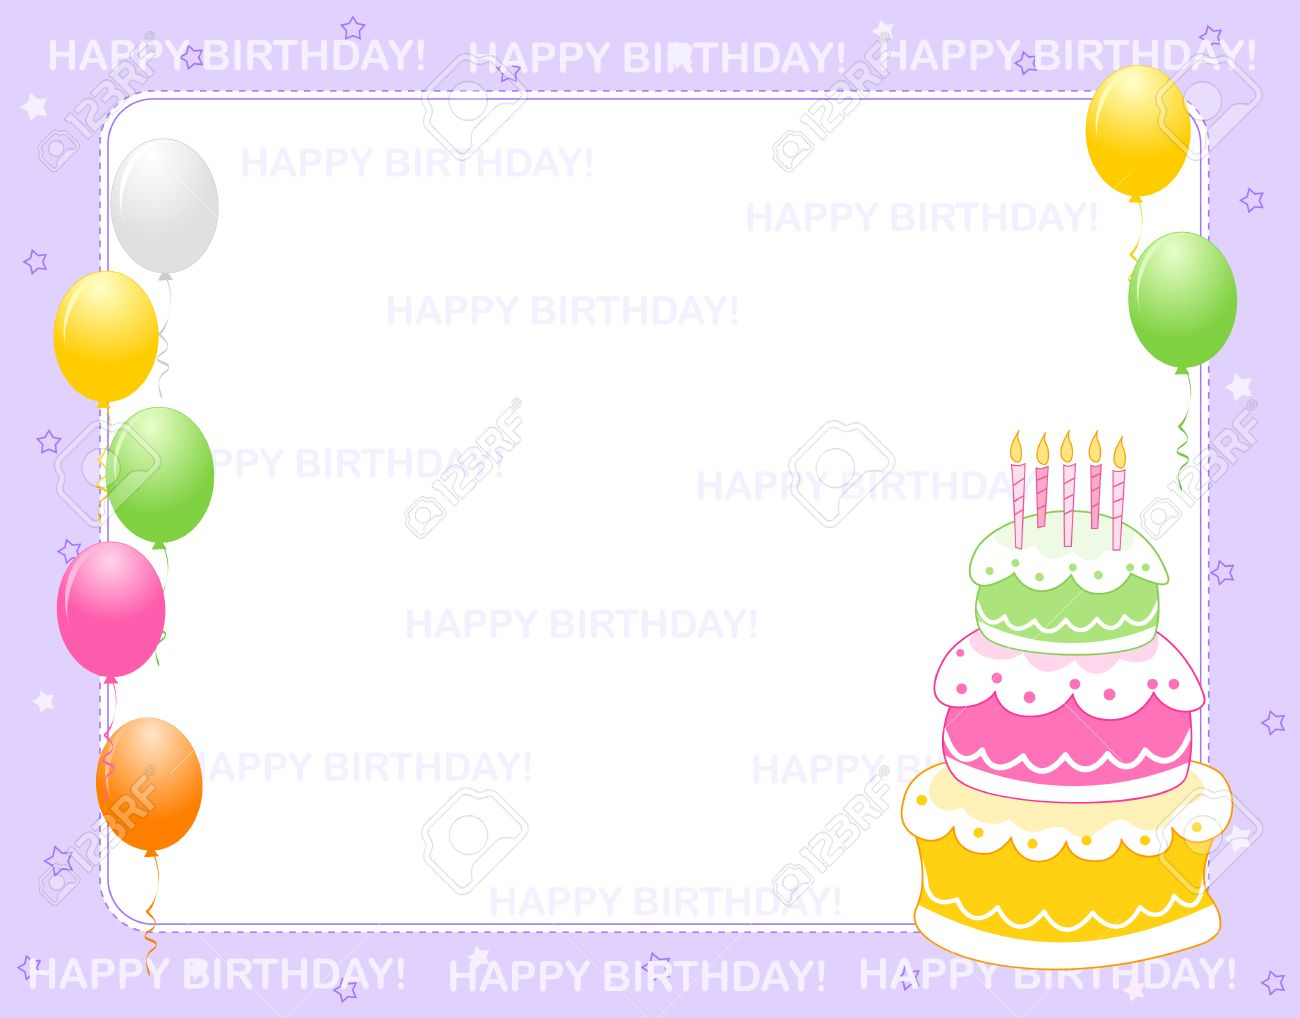 Colorful Birthday Card Invitation Background With Happy Text And Balloons A Birth Day